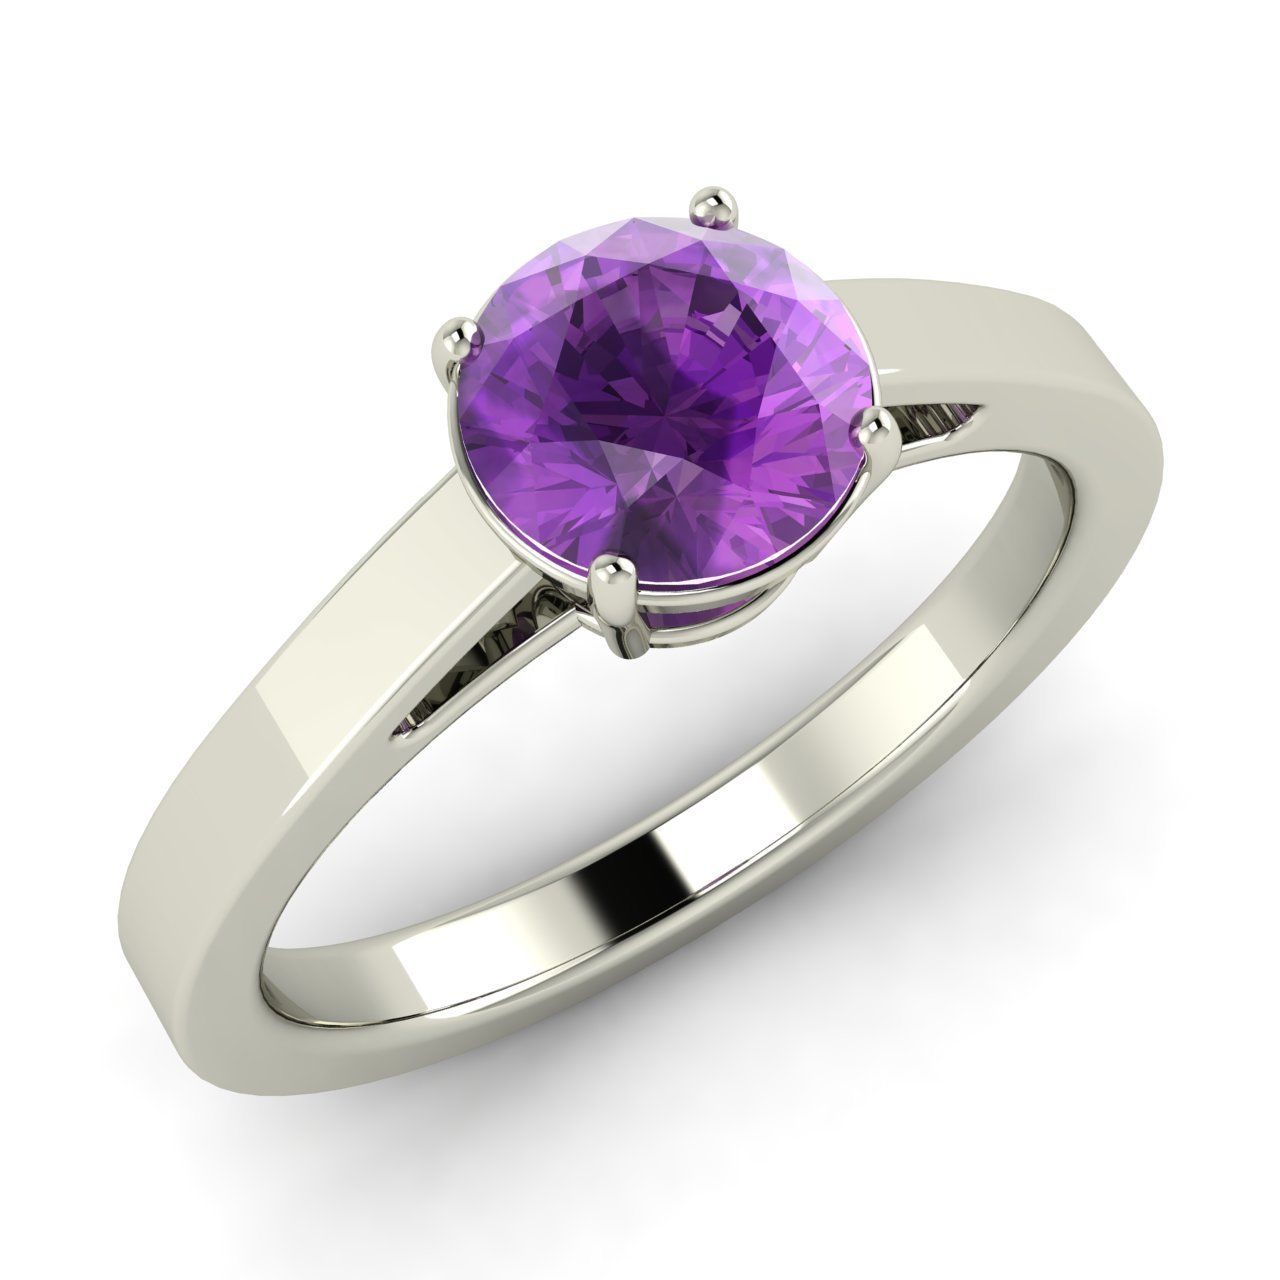 Natural Amethyst Classic Solitaire Anniversary Ring in 10K White Gold - 0.62 ct